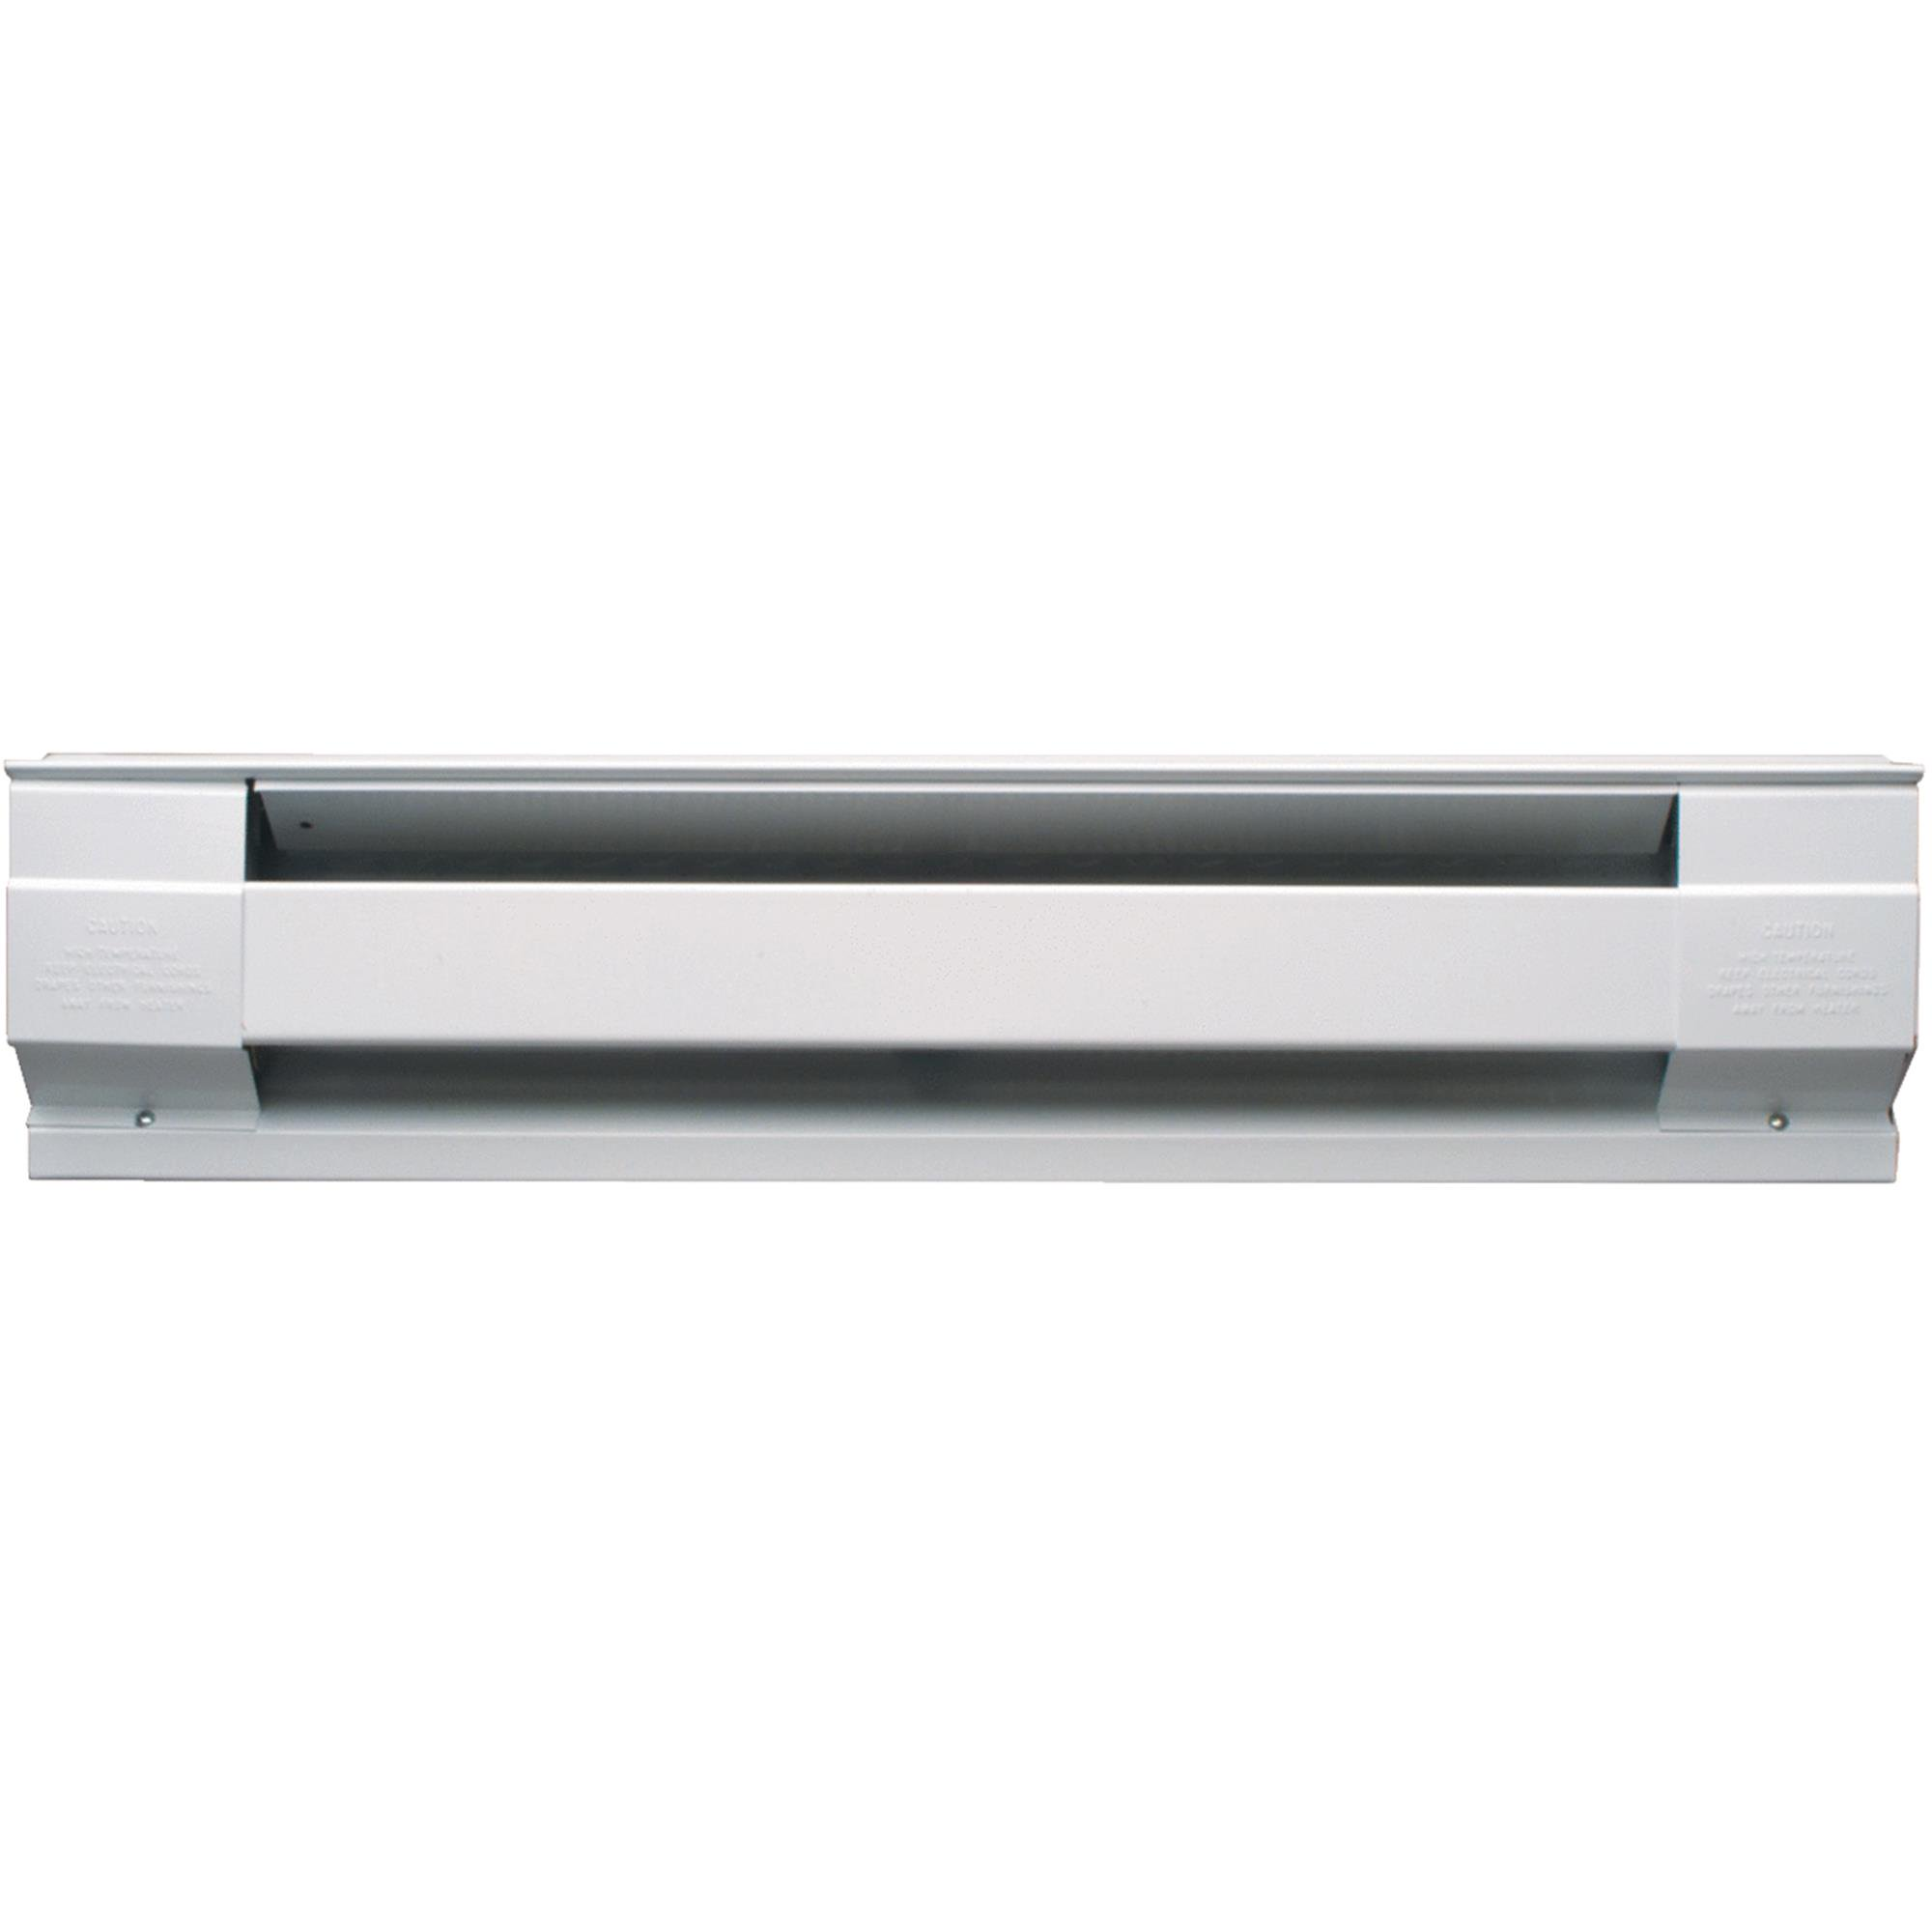 Cadet Electric Baseboard Heater by Cadet